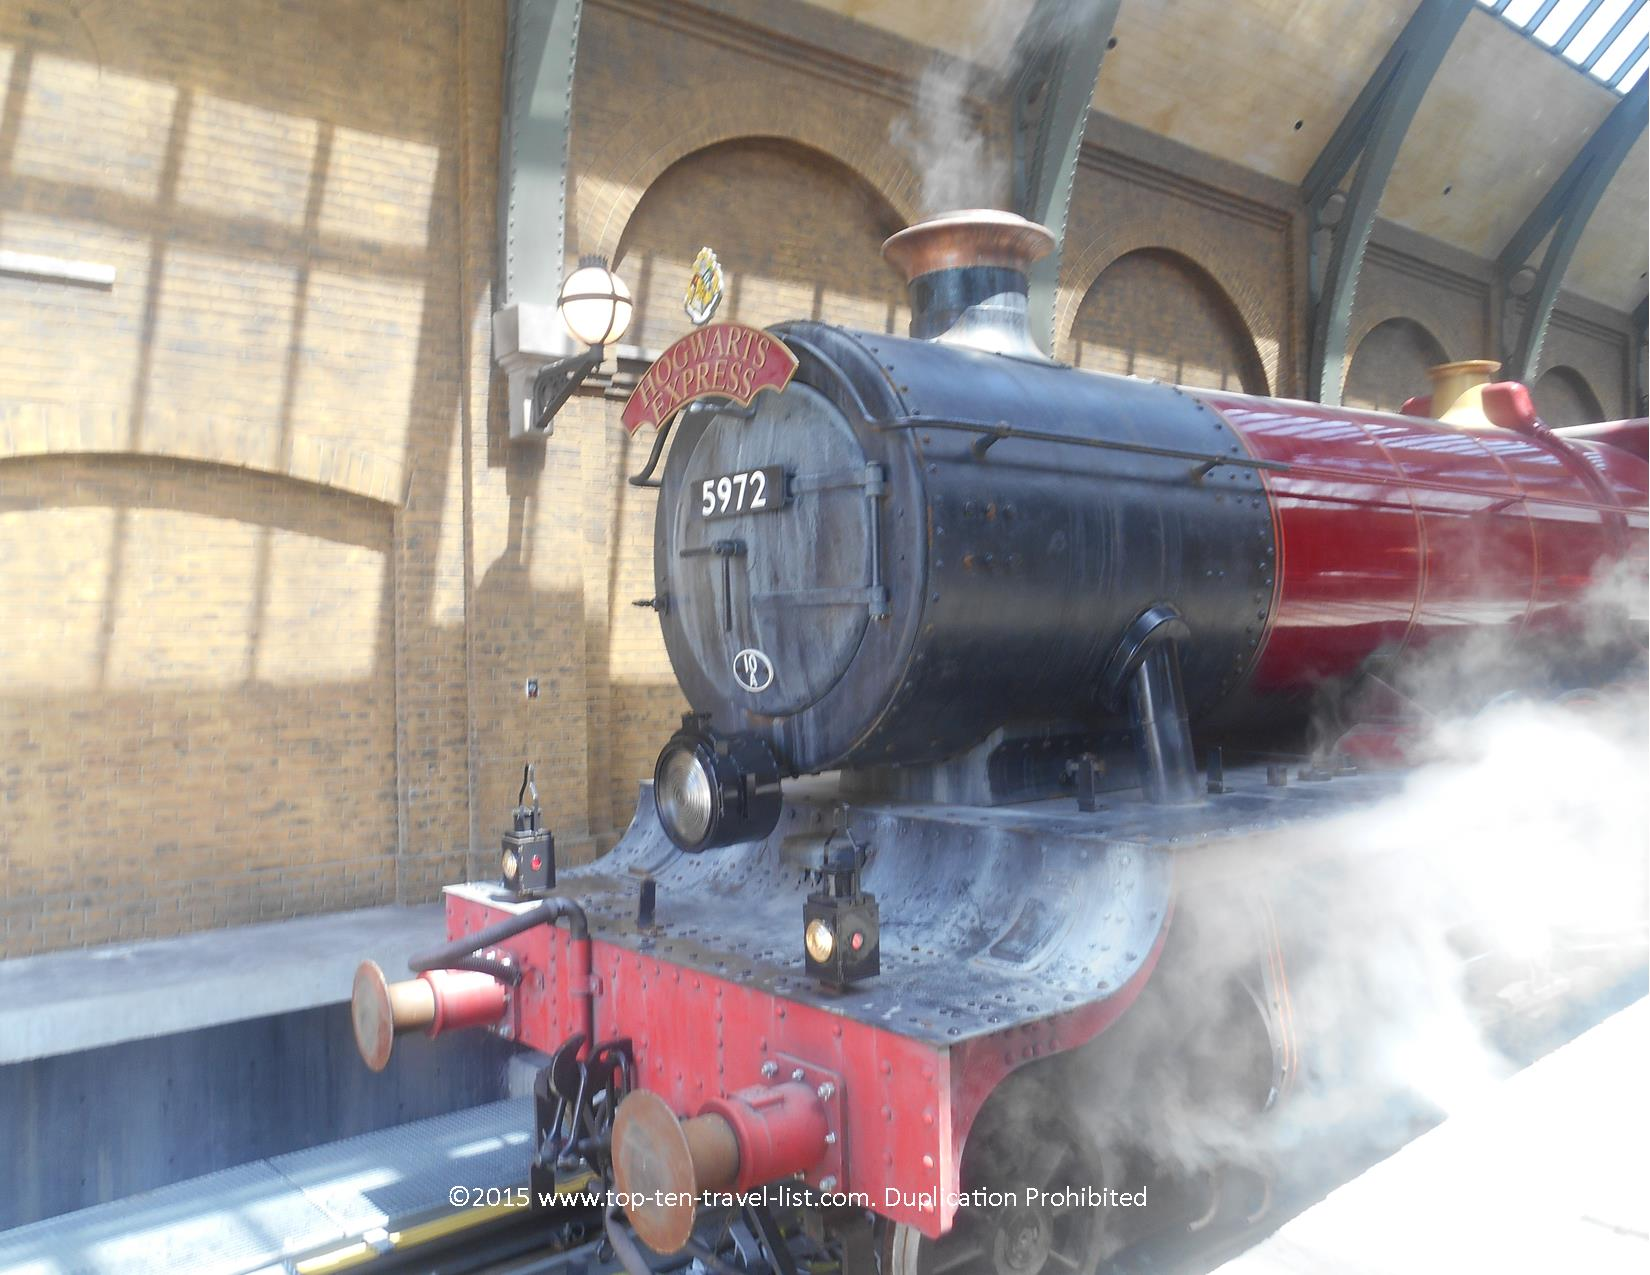 The Hogwarts Express at The Wizarding World of Harry Potter at Universal Studios Orlando